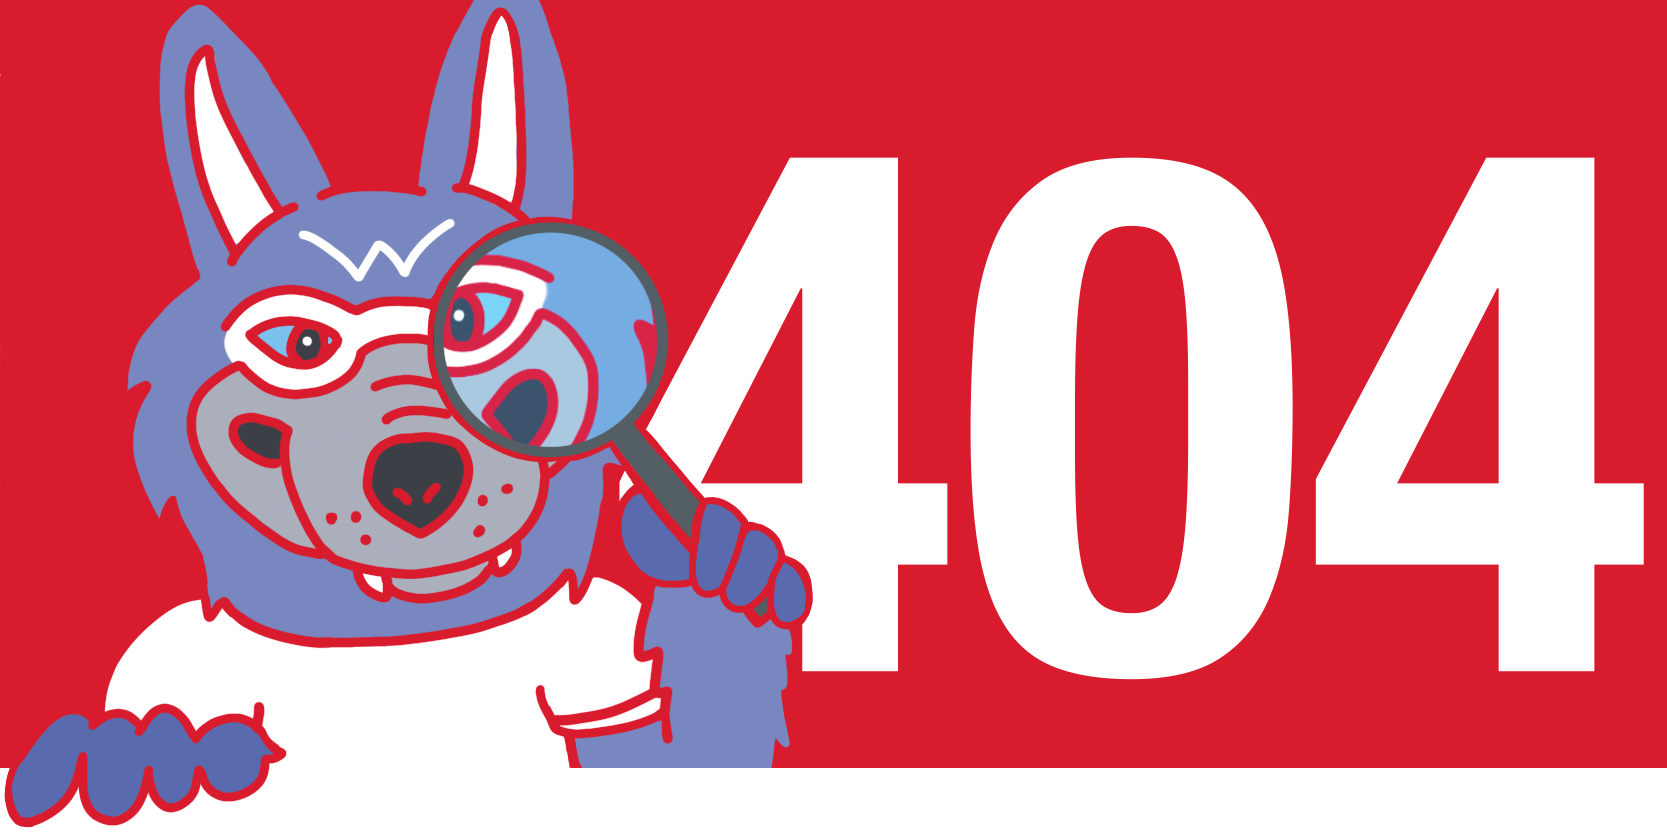 Wolfie holds magnifying glass with 404 error message